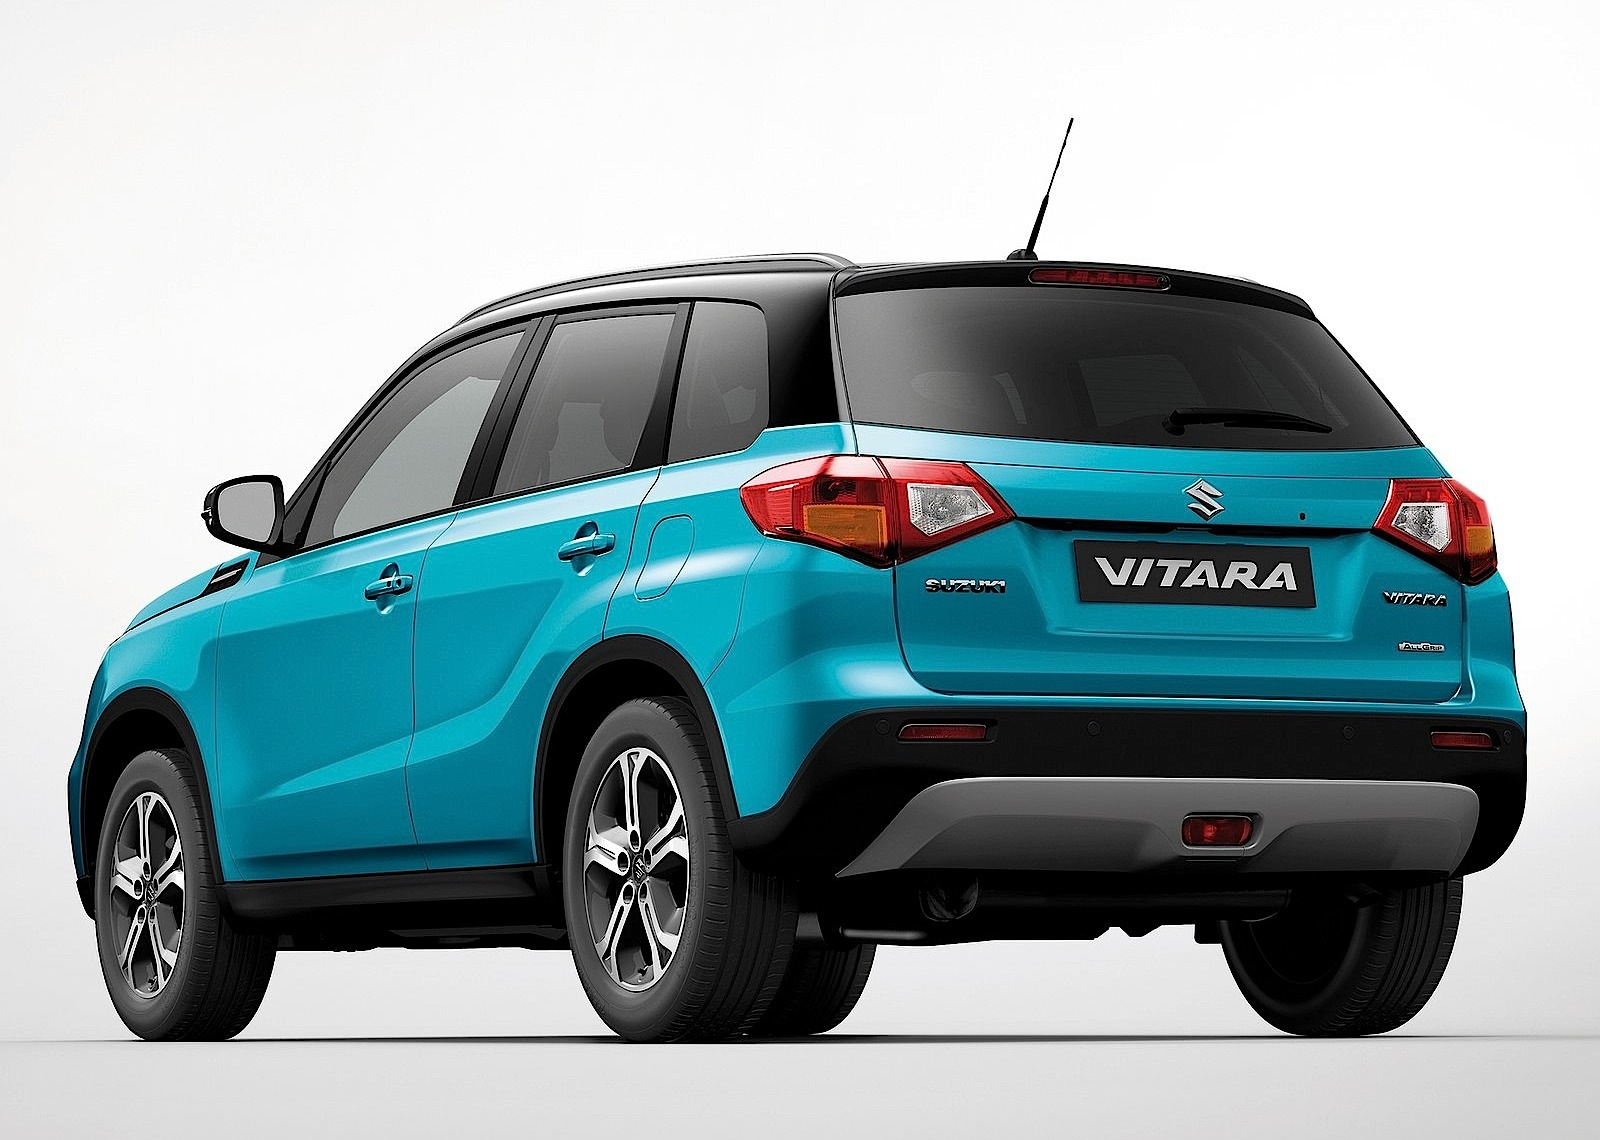 suzuki vitara specs photos 2014 2015 2016 2017 2018 autoevolution. Black Bedroom Furniture Sets. Home Design Ideas